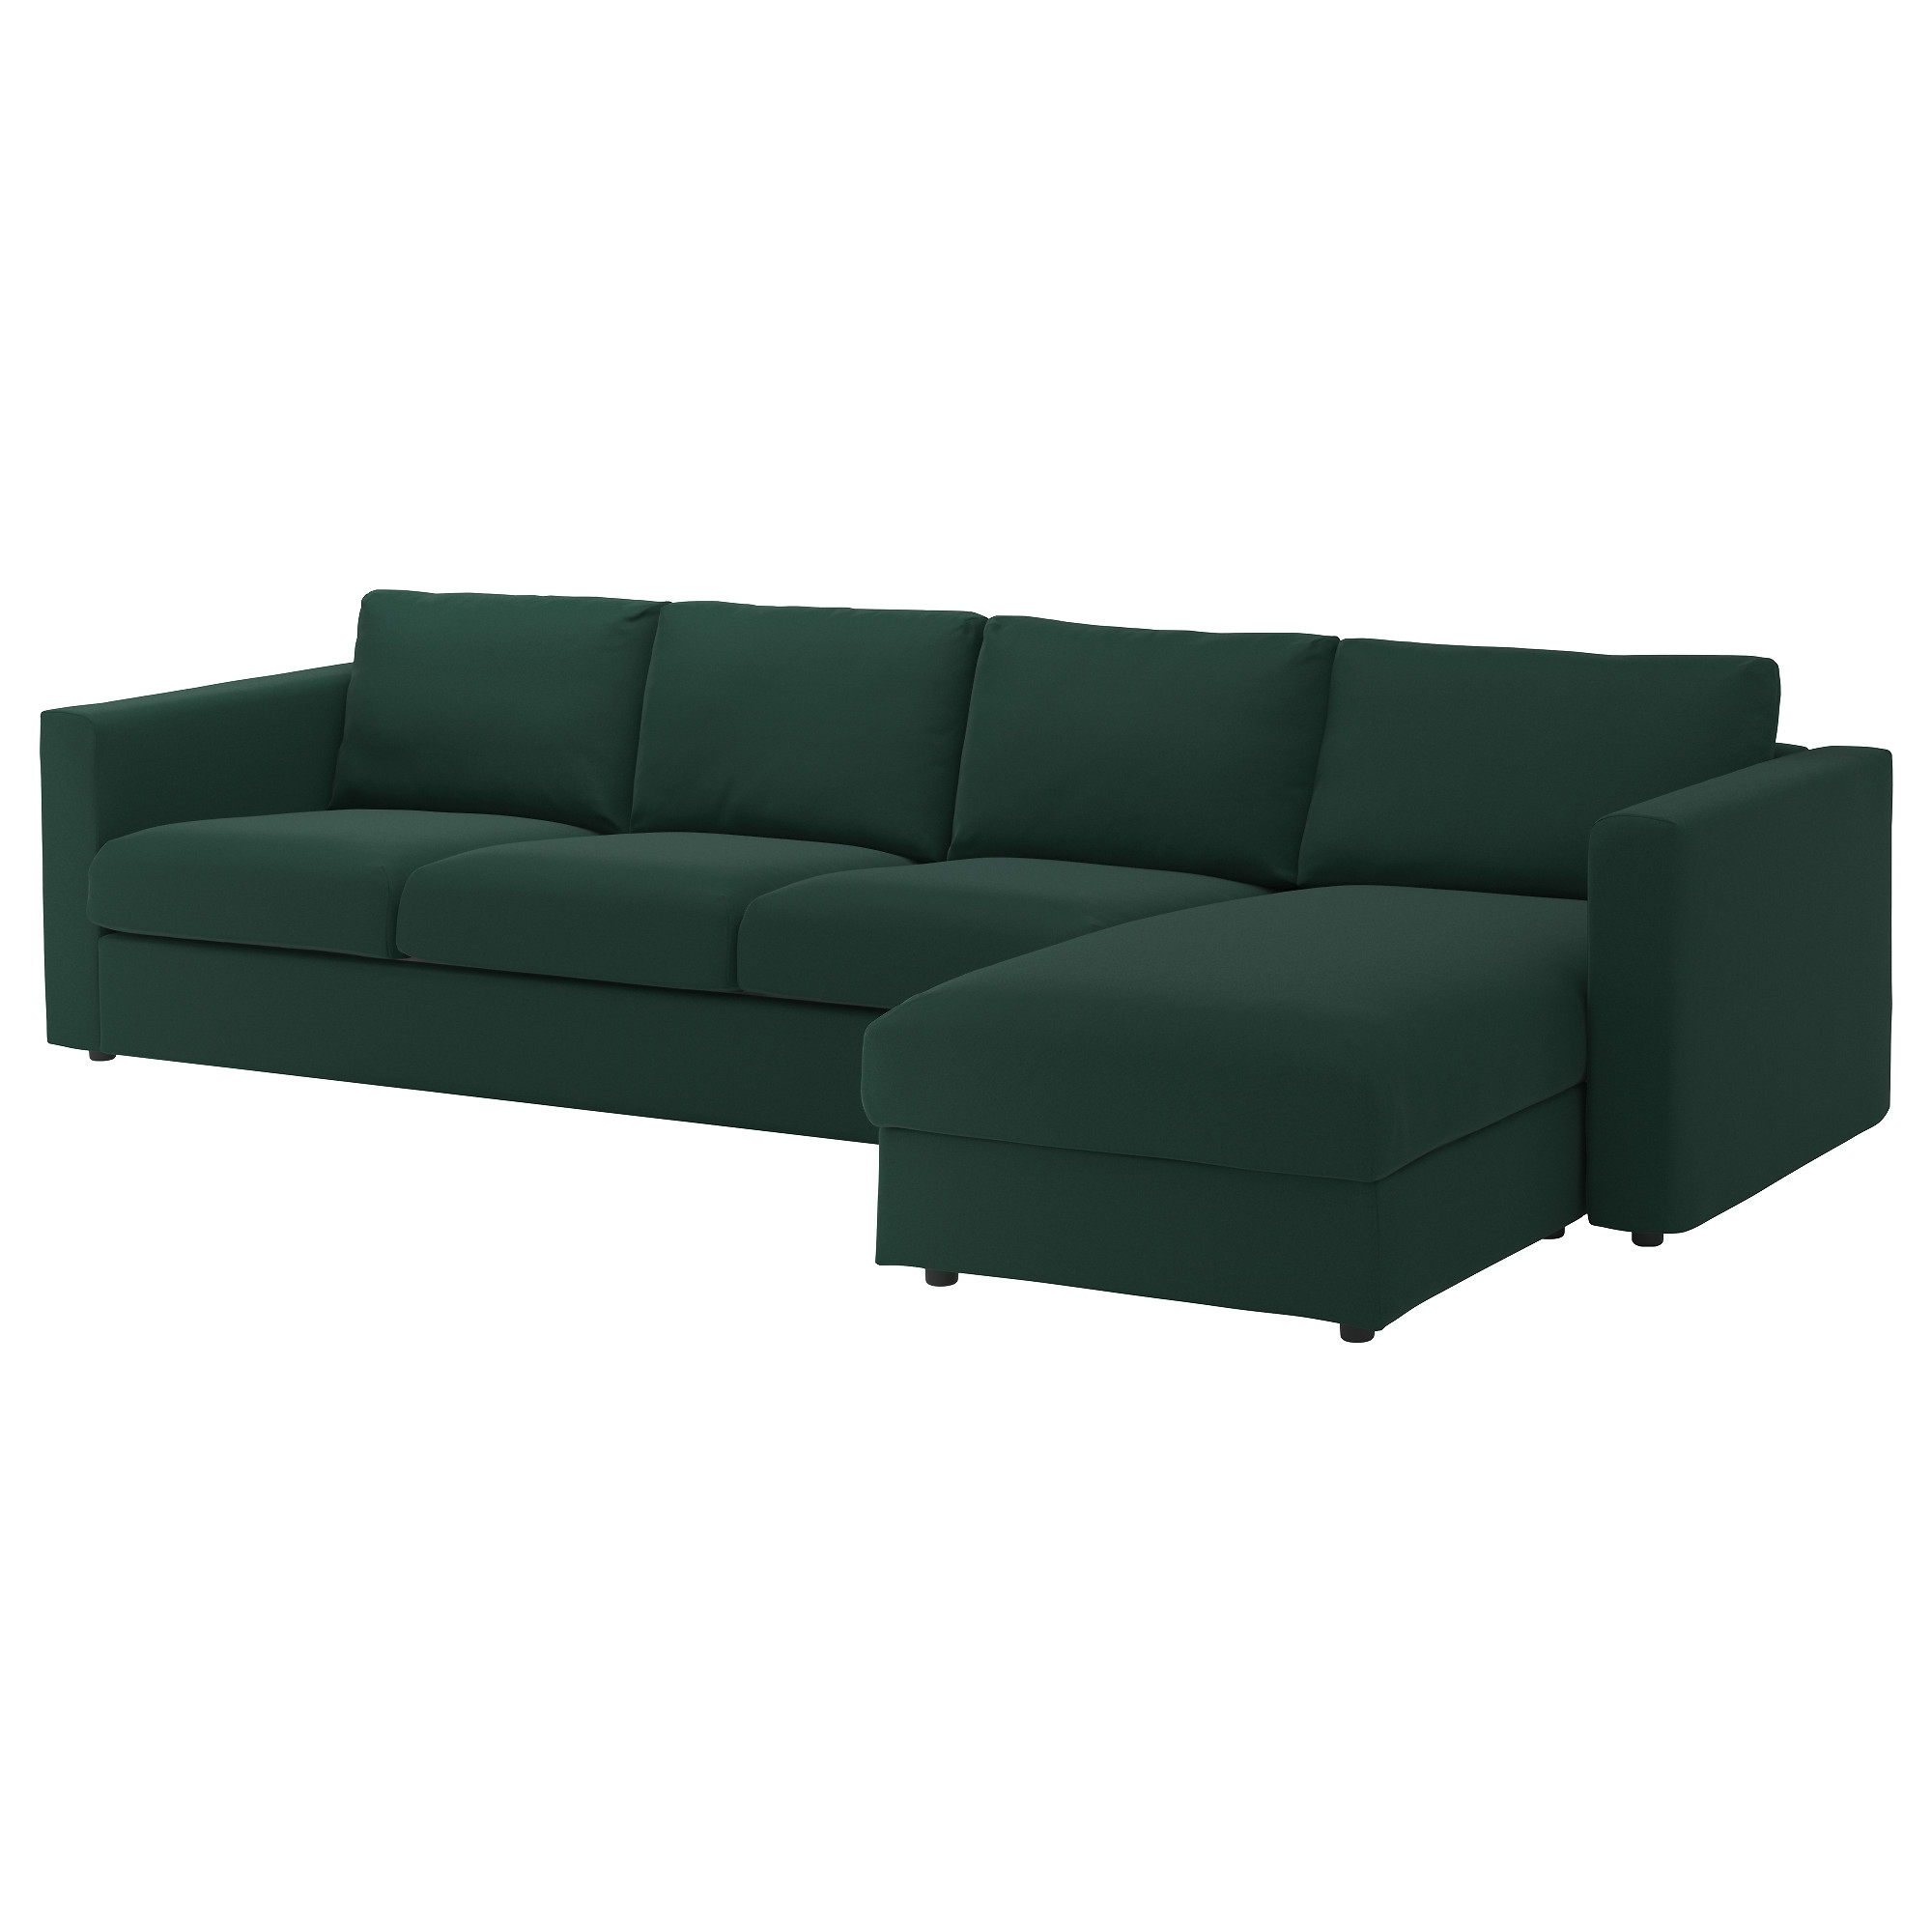 Fabric Sectional Sofas Ikea With Recliners For Sale Cody Piece Sofa For Sectional Sofas At Ikea (View 5 of 10)